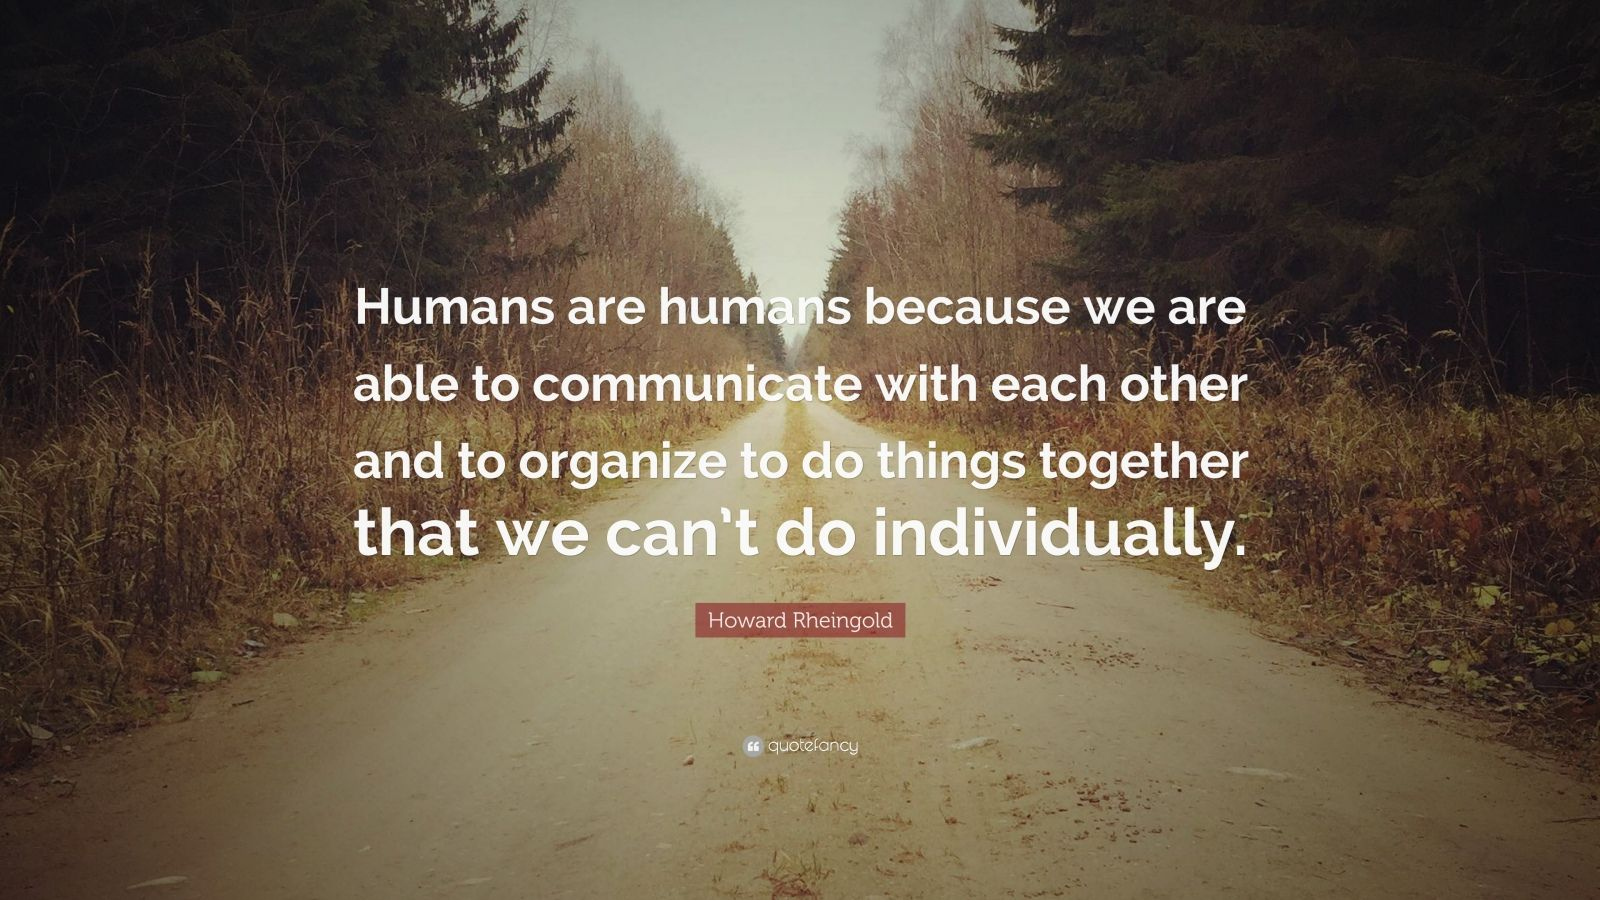 """Howard Rheingold Quote: """"Humans are humans because we are able to communicate with each other and to organize to do things together that we can't do individually."""""""